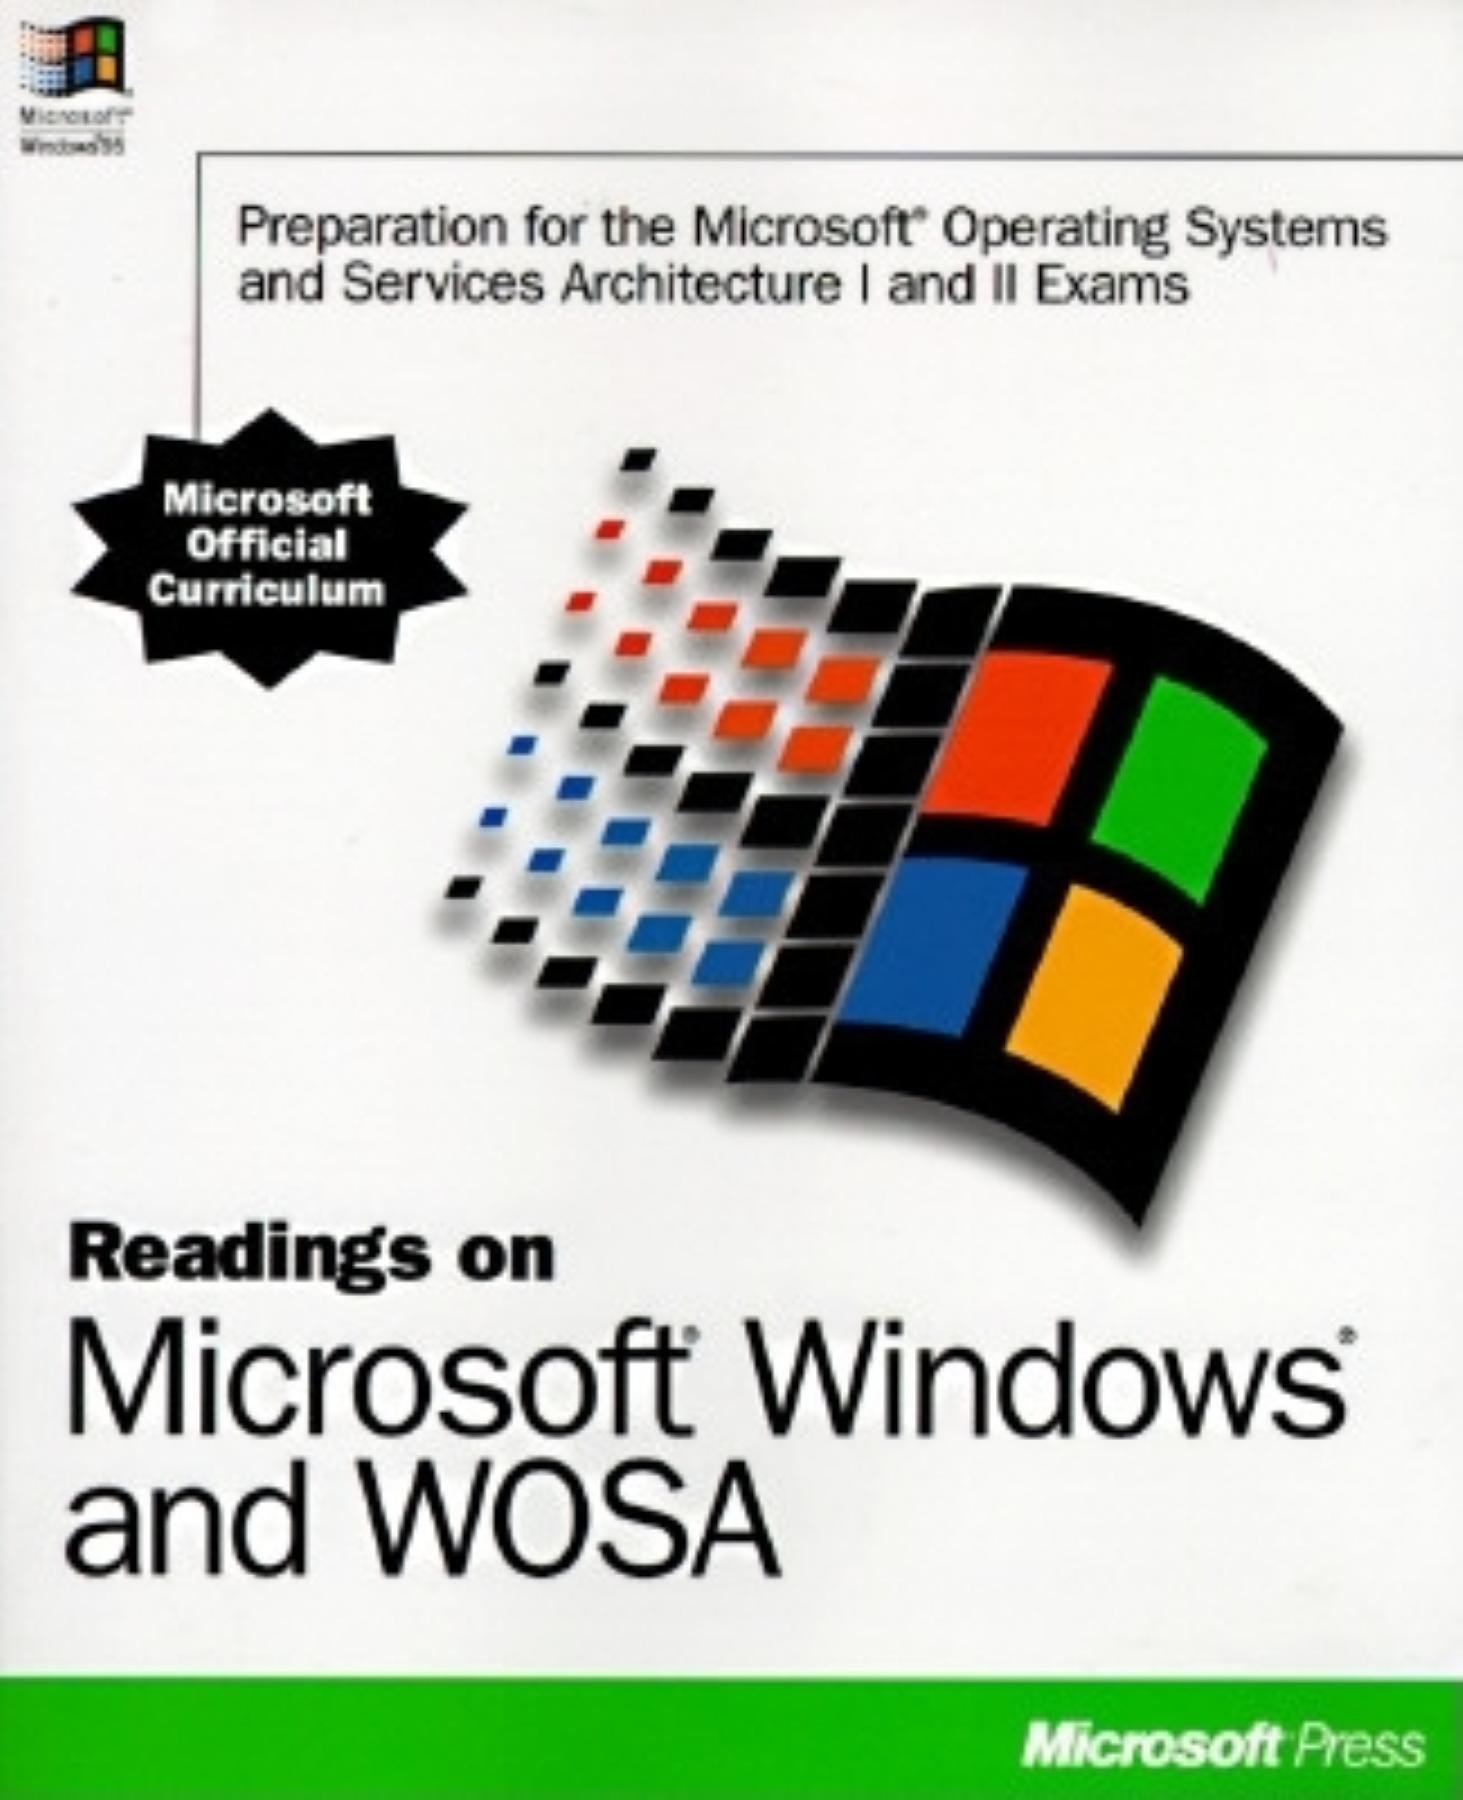 Readings on Microsoft Windows and WOSA: Preparation for the Microsoft Windows Operating Systems and Service Architecture I and II Exams